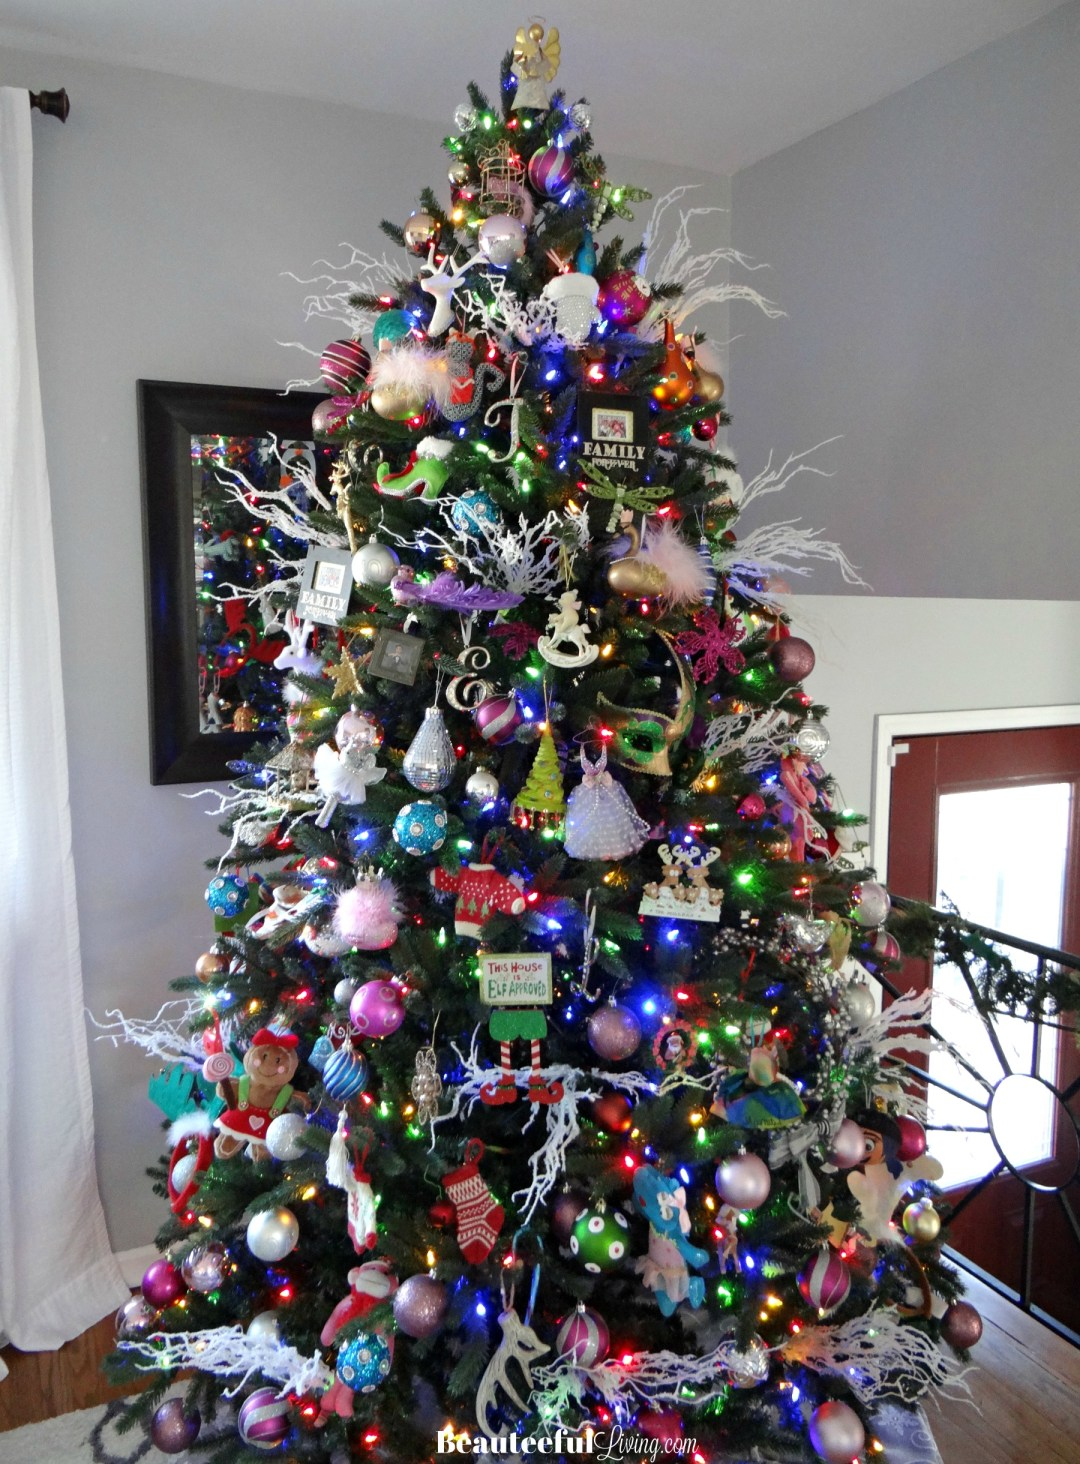 Prelit 7 foot Christmas Tree - Beauteeful Living